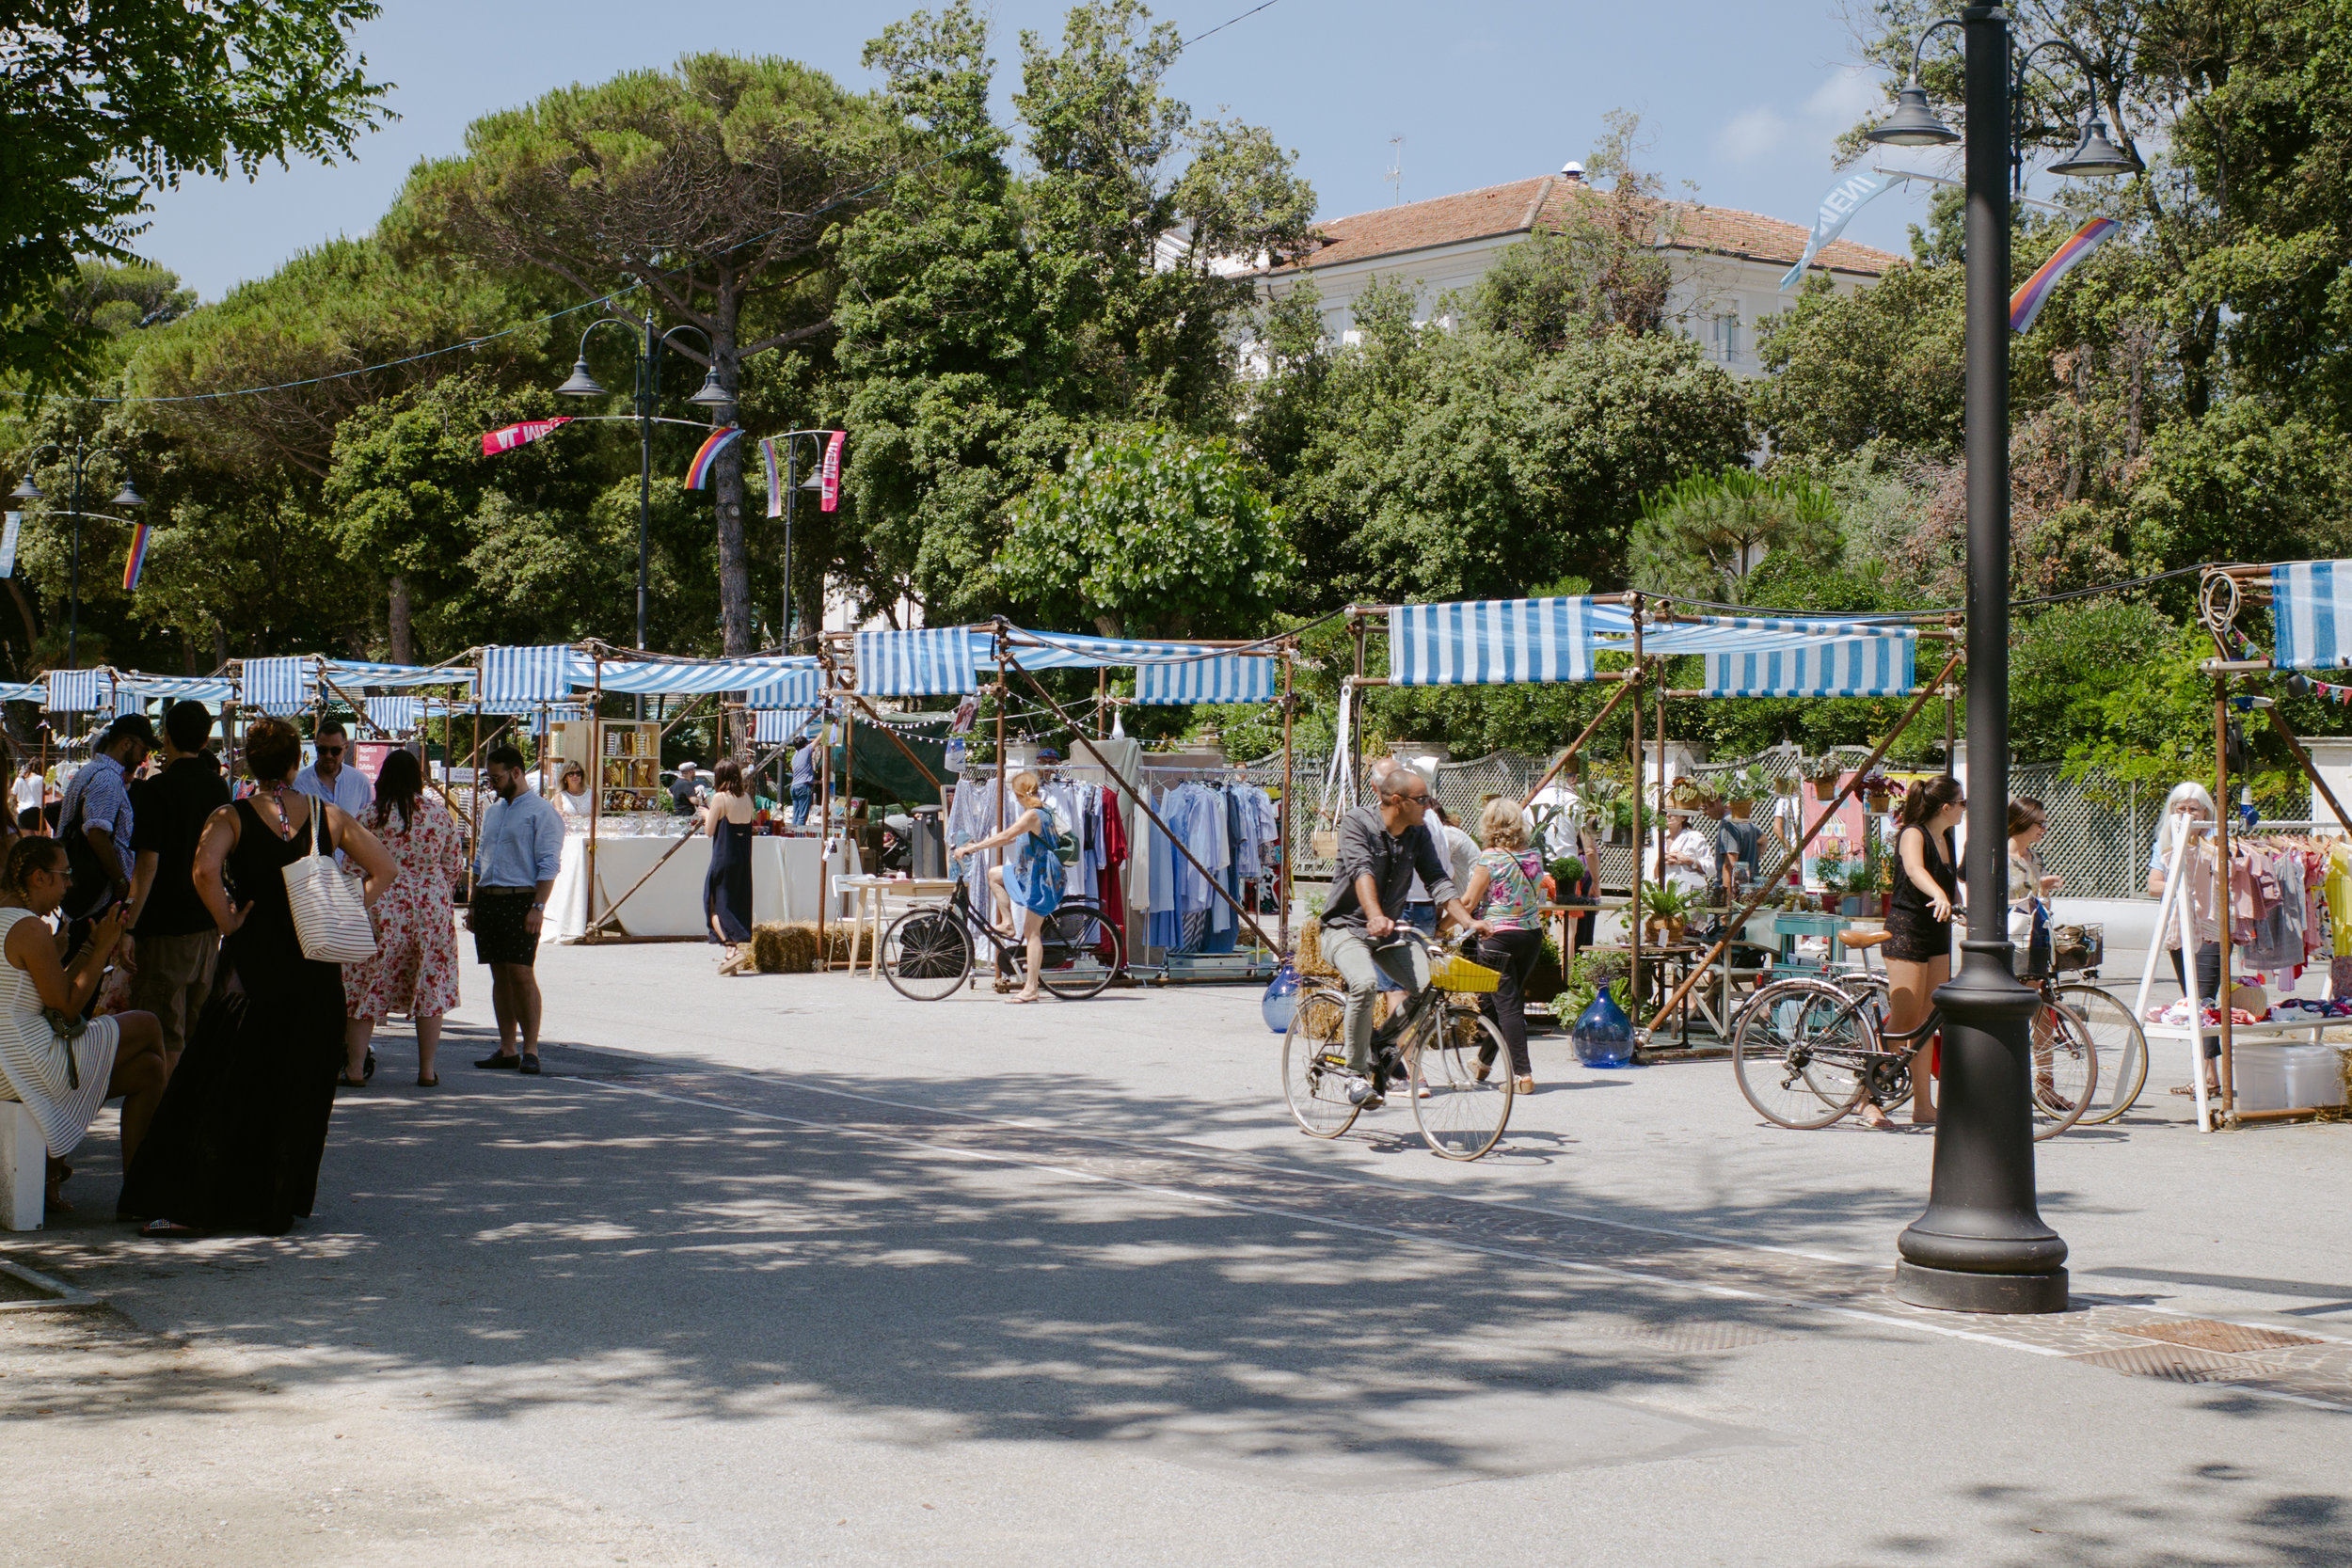 A marketplace to compliment the cuisine, with wonderful vendors to discover.